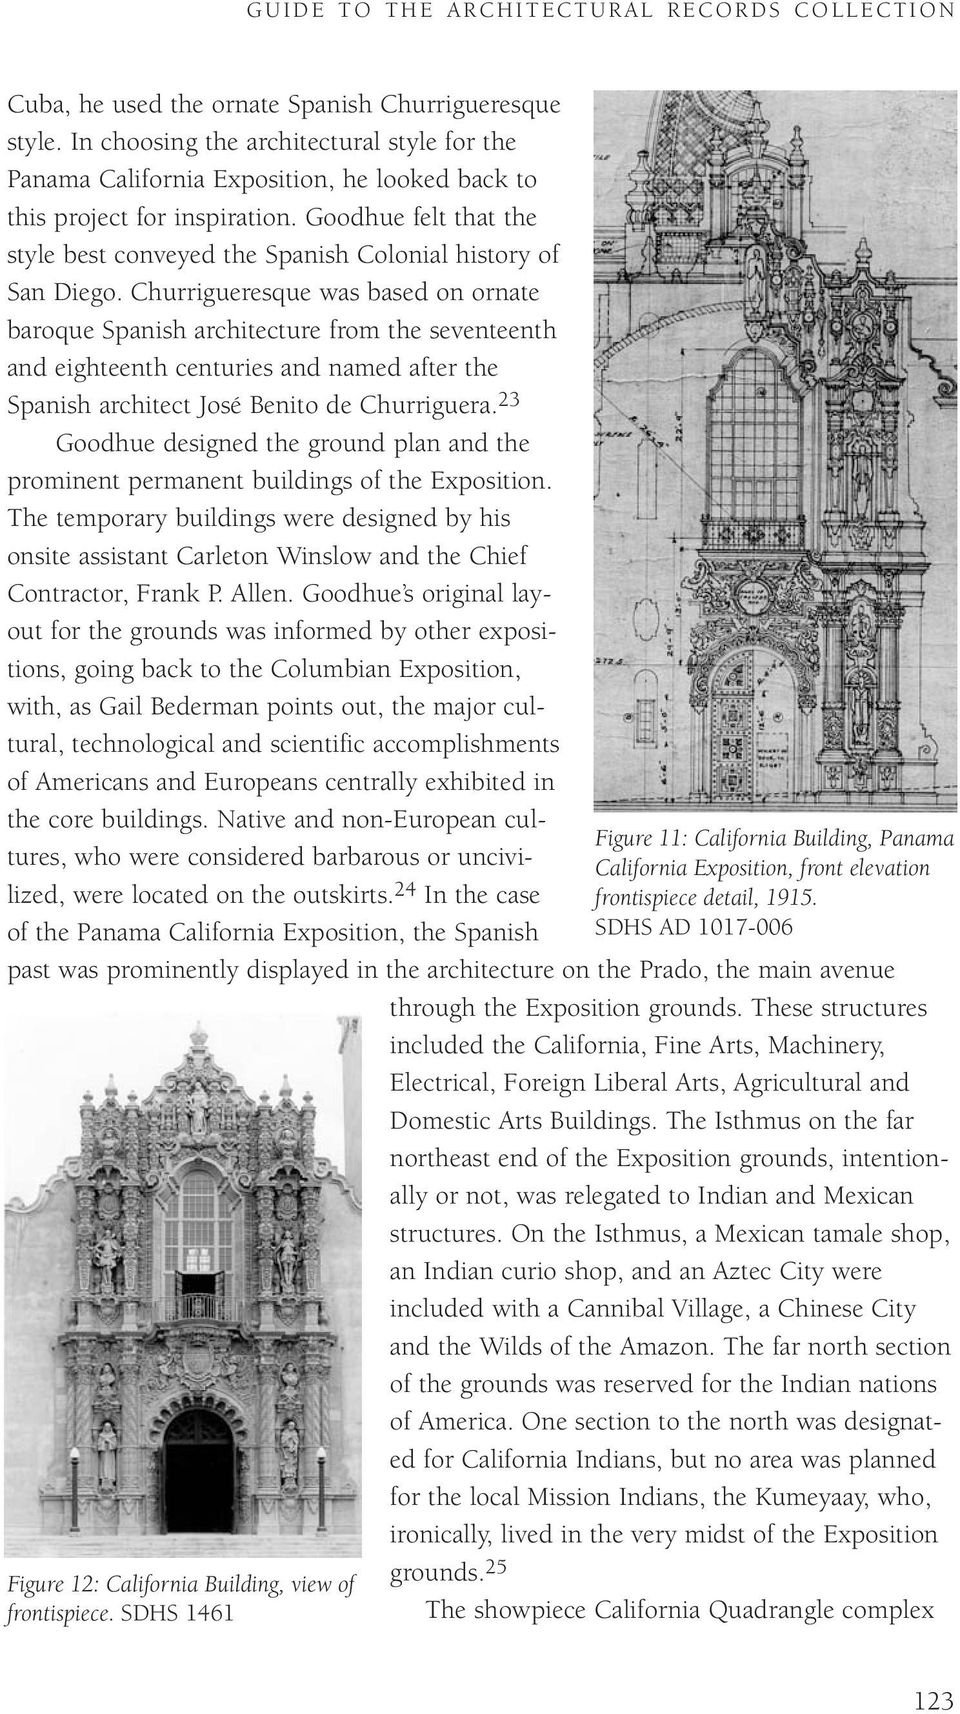 Goodhue felt that the style best conveyed the Spanish Colonial history of San Diego.